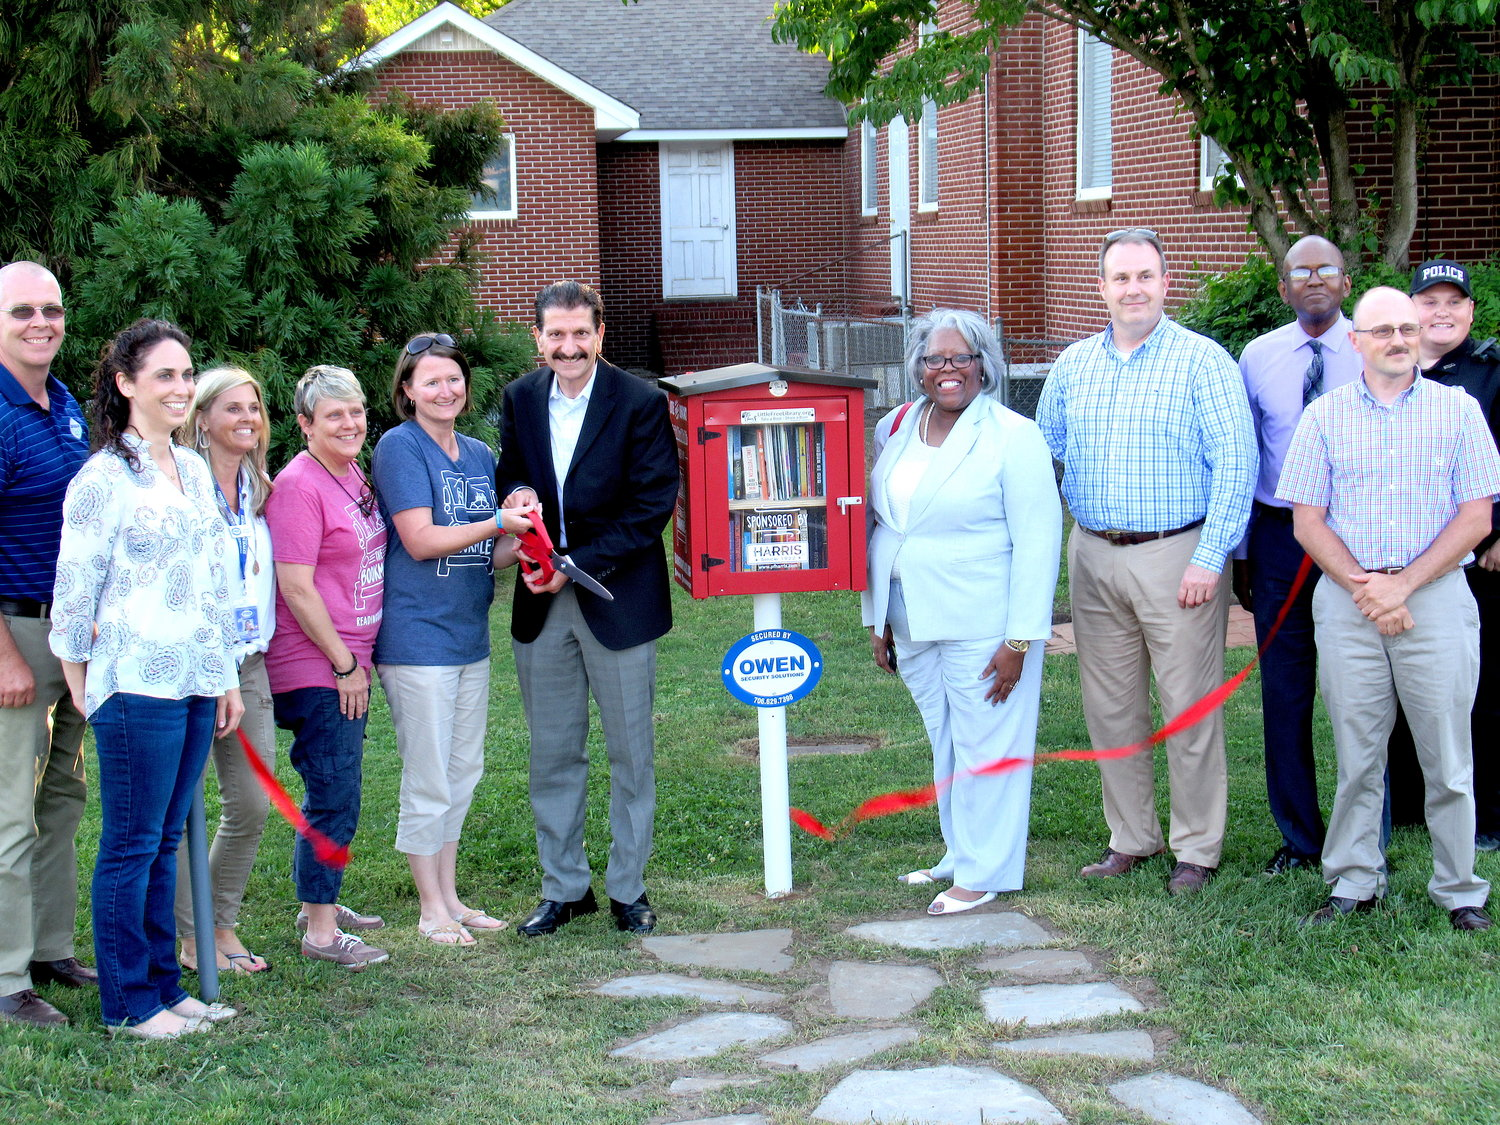 The City of Emerson celebrated the opening of a new Little Free Library outside City Hall with a ribbon-cutting ceremony Monday evening.